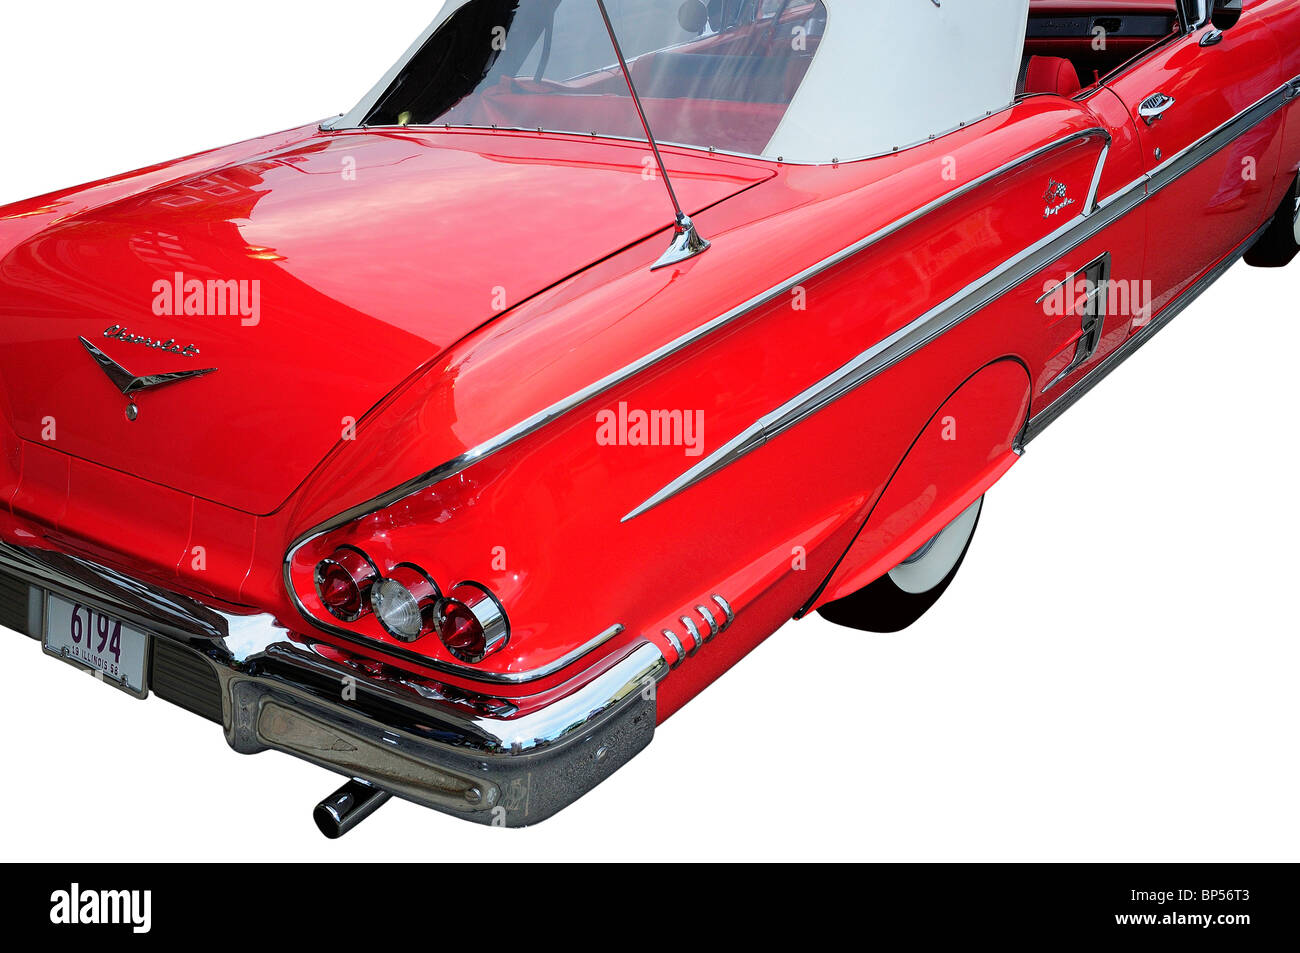 1958 Chevrolet Stock Photos Images Alamy 1957 Chevy Impala Convertible Rio Red Image